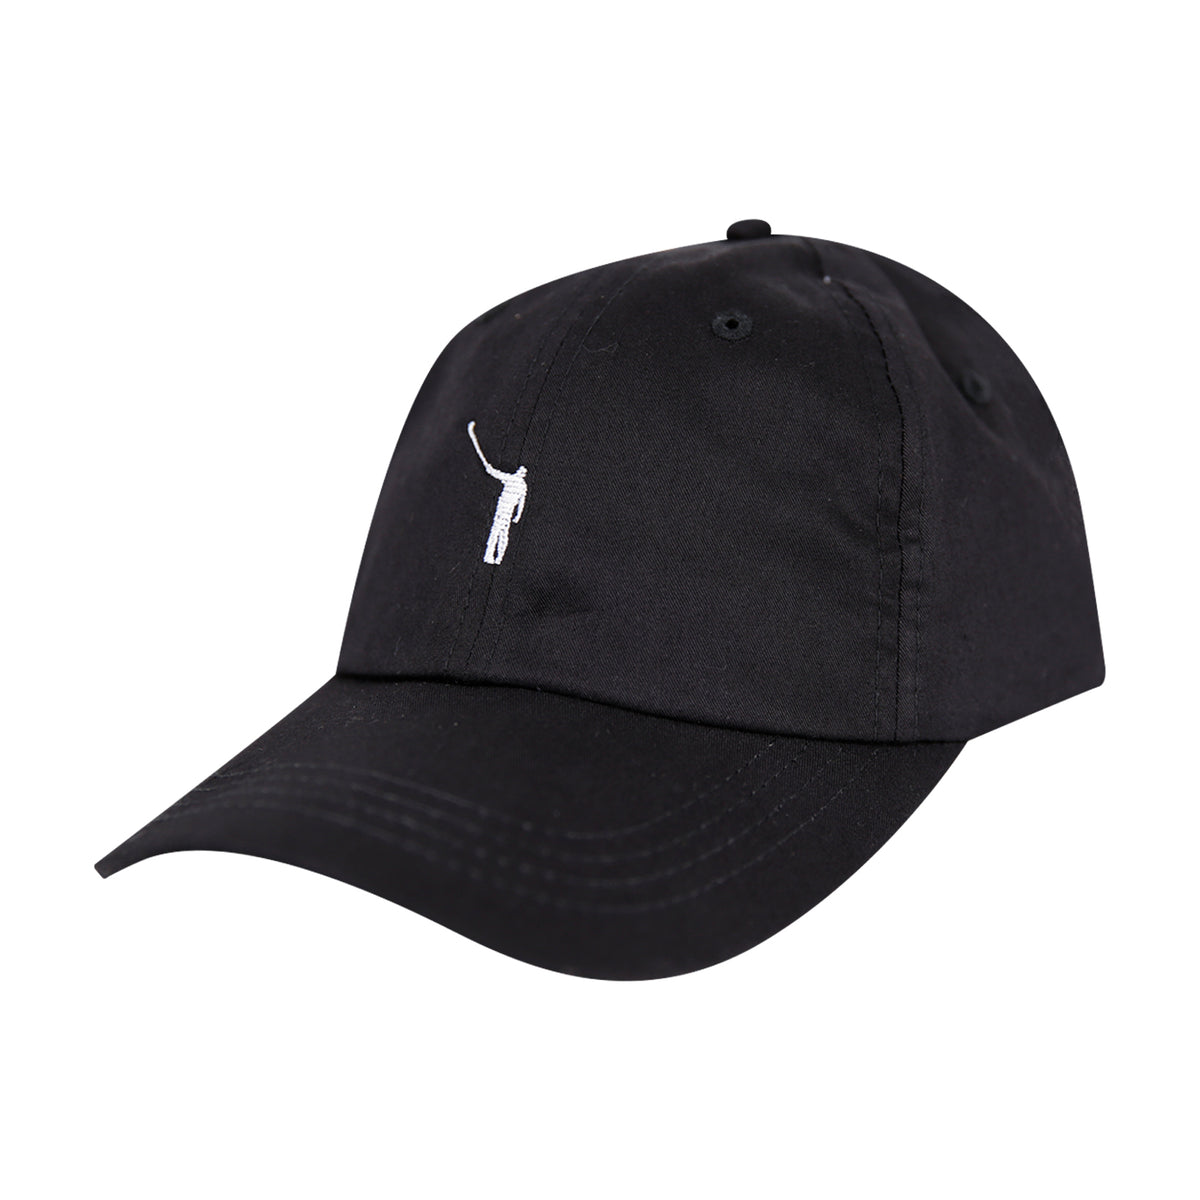 The No Laying Up Cotton Hat | Black w/ White Logo